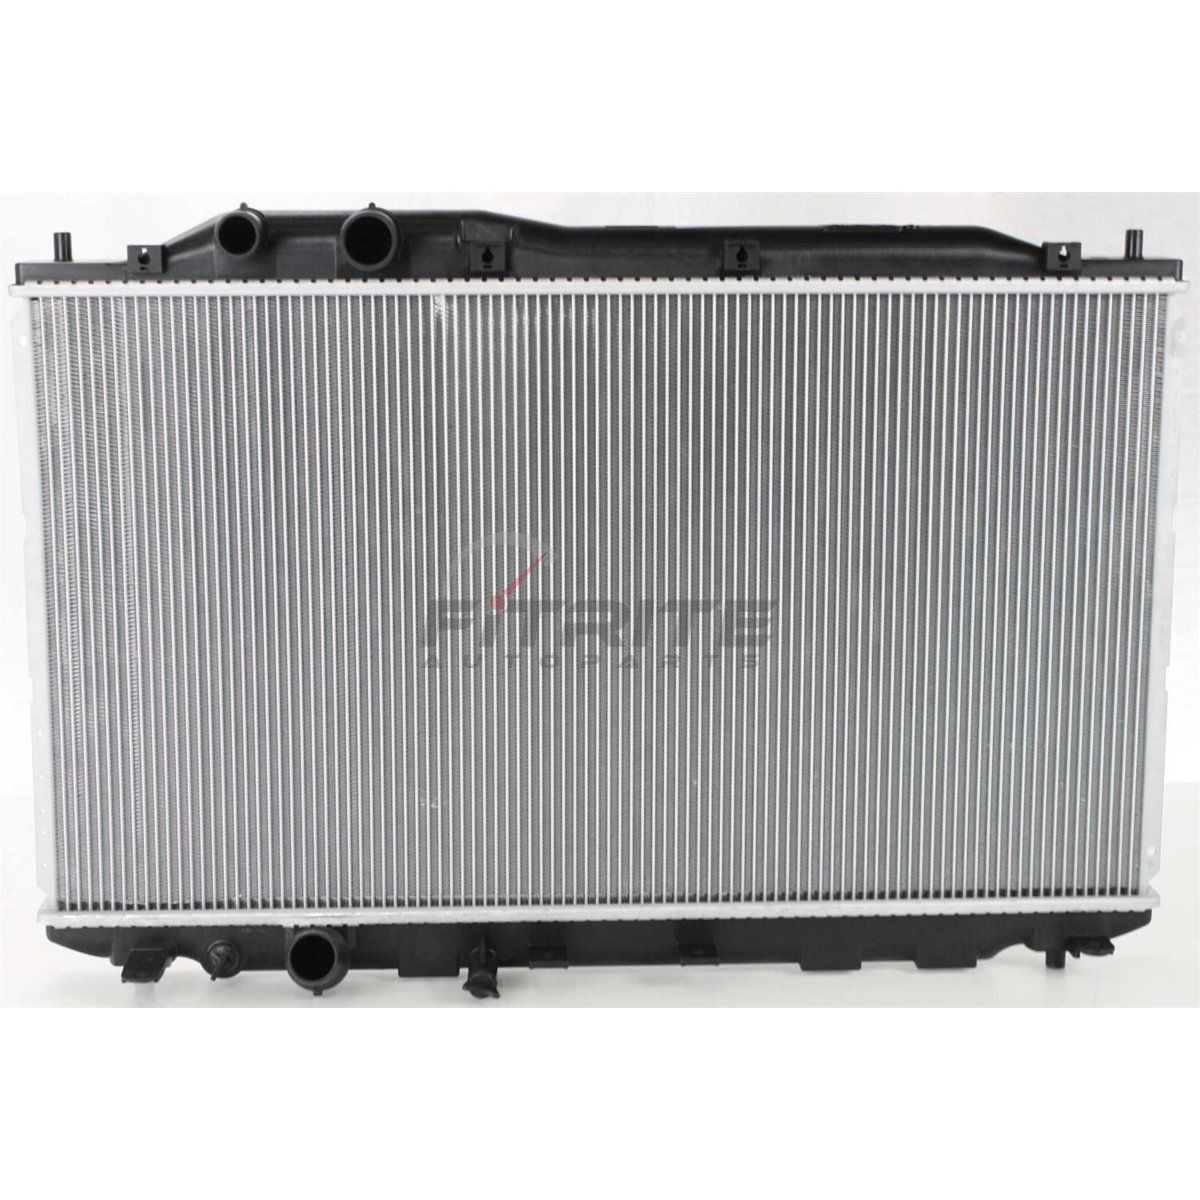 NEW RADIATOR FOR 2006-2011 ACURA CSX HO3010208 RAD2922